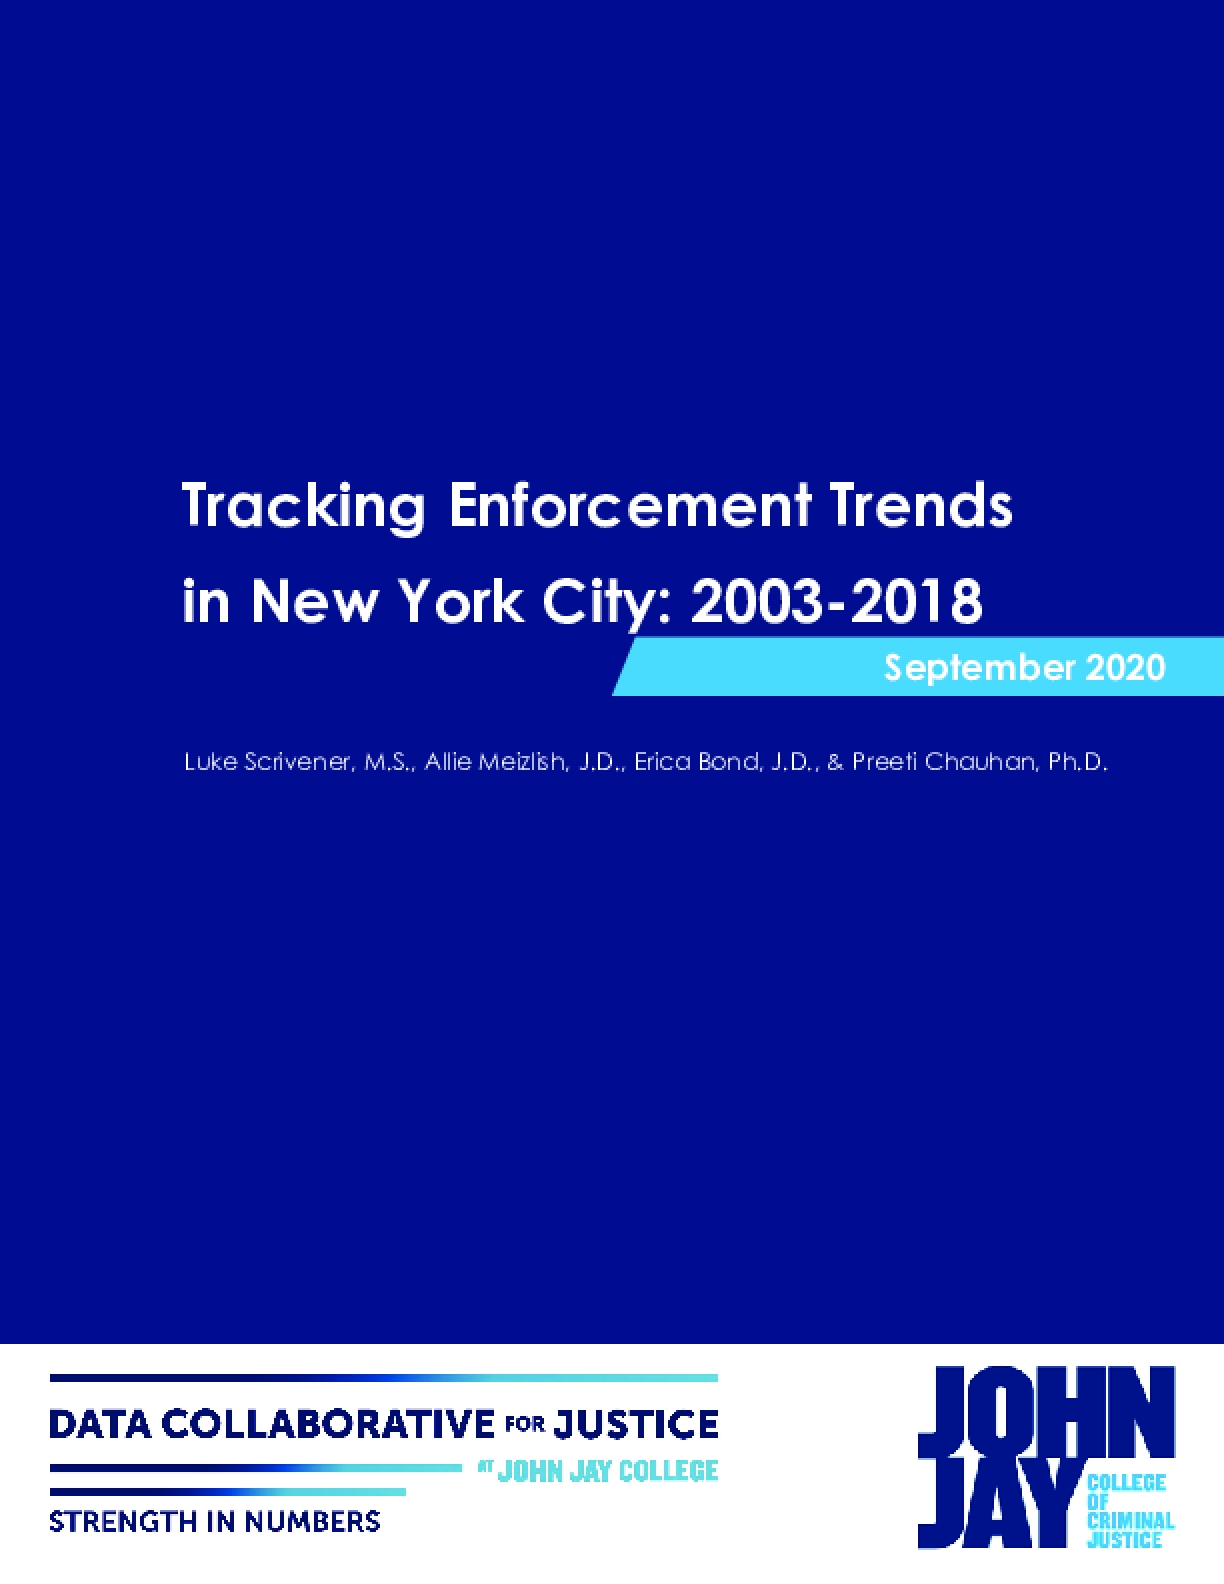 Tracking Enforcement Trends in New York City: 2003-2018